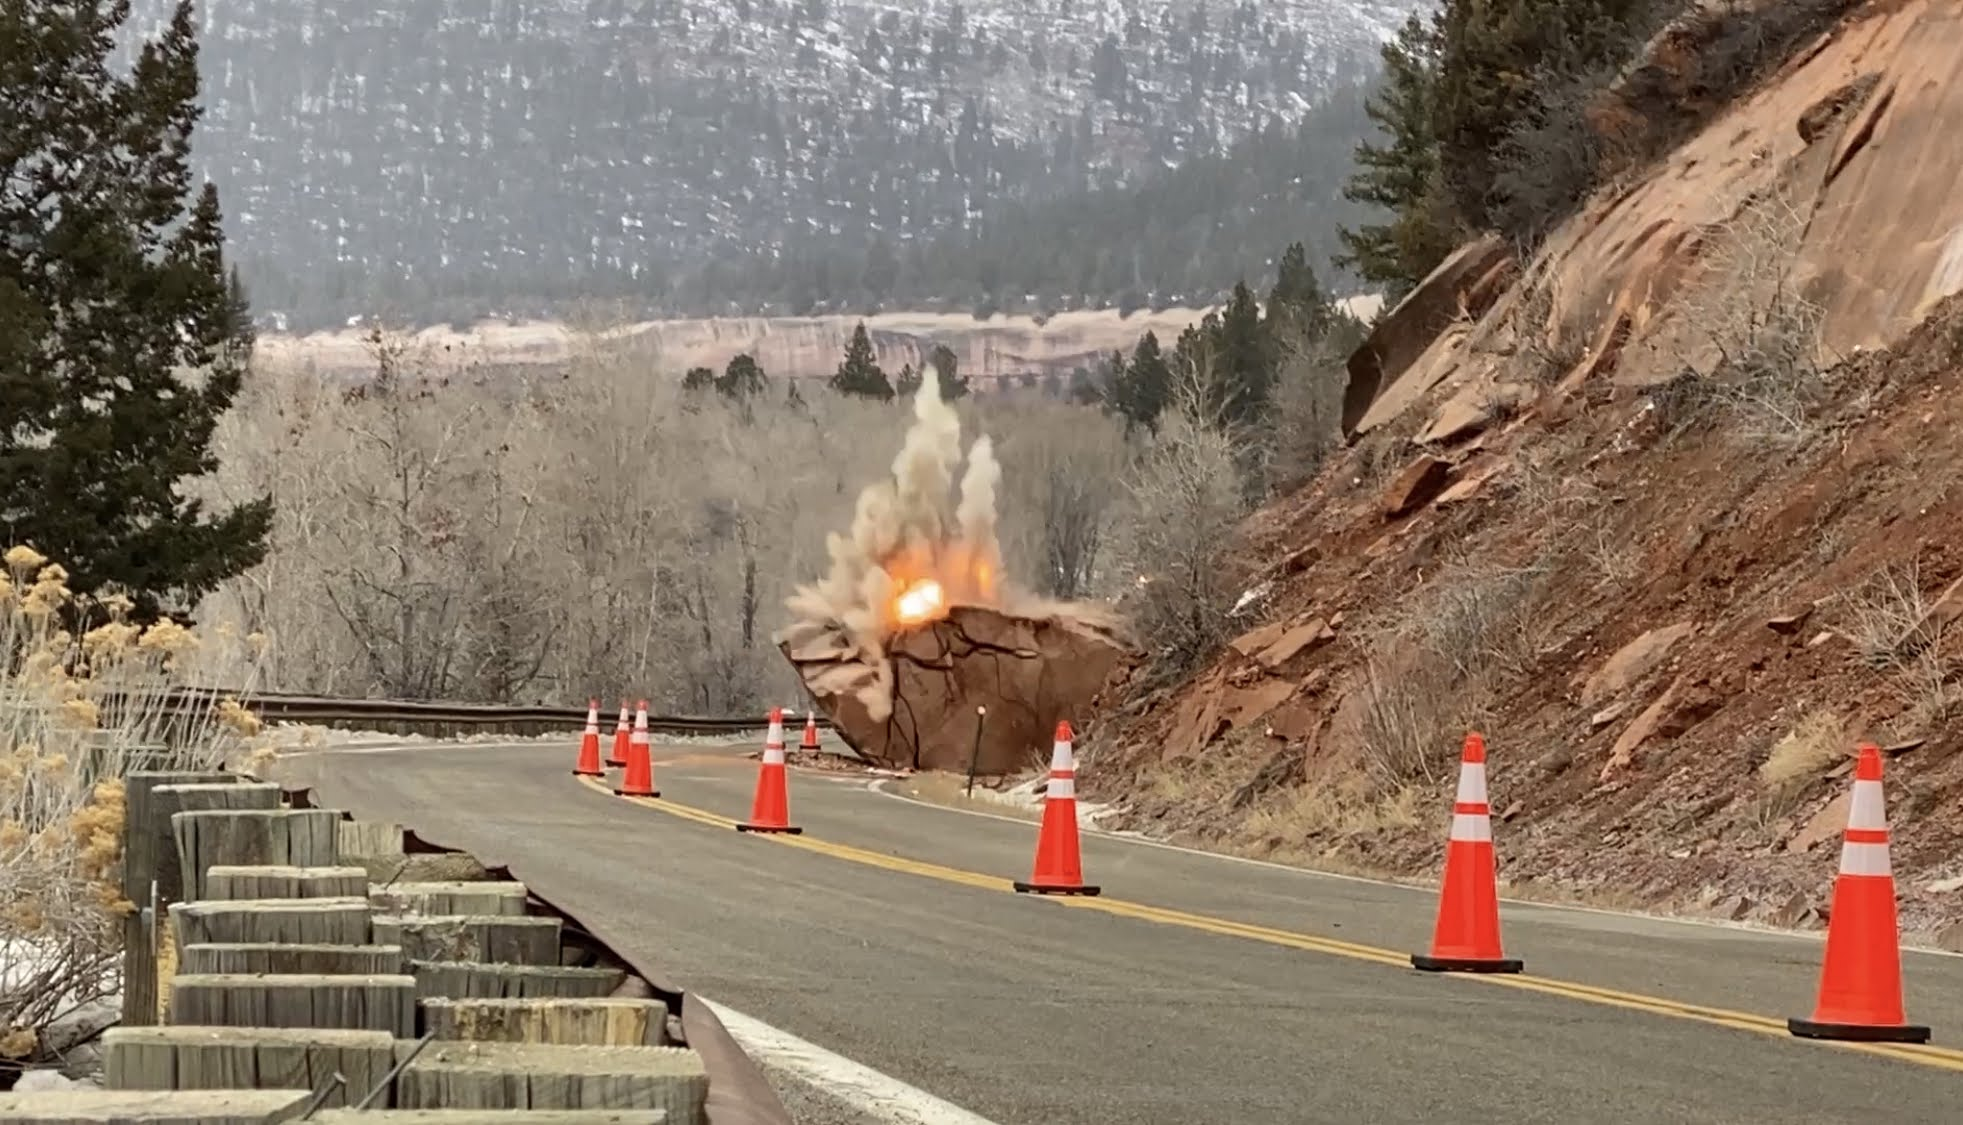 CDOT crews detonate explosives placed in a 200-ton boulder on Colorado Highway 145 south of Telluride on Friday, Feb. 5, 2021.